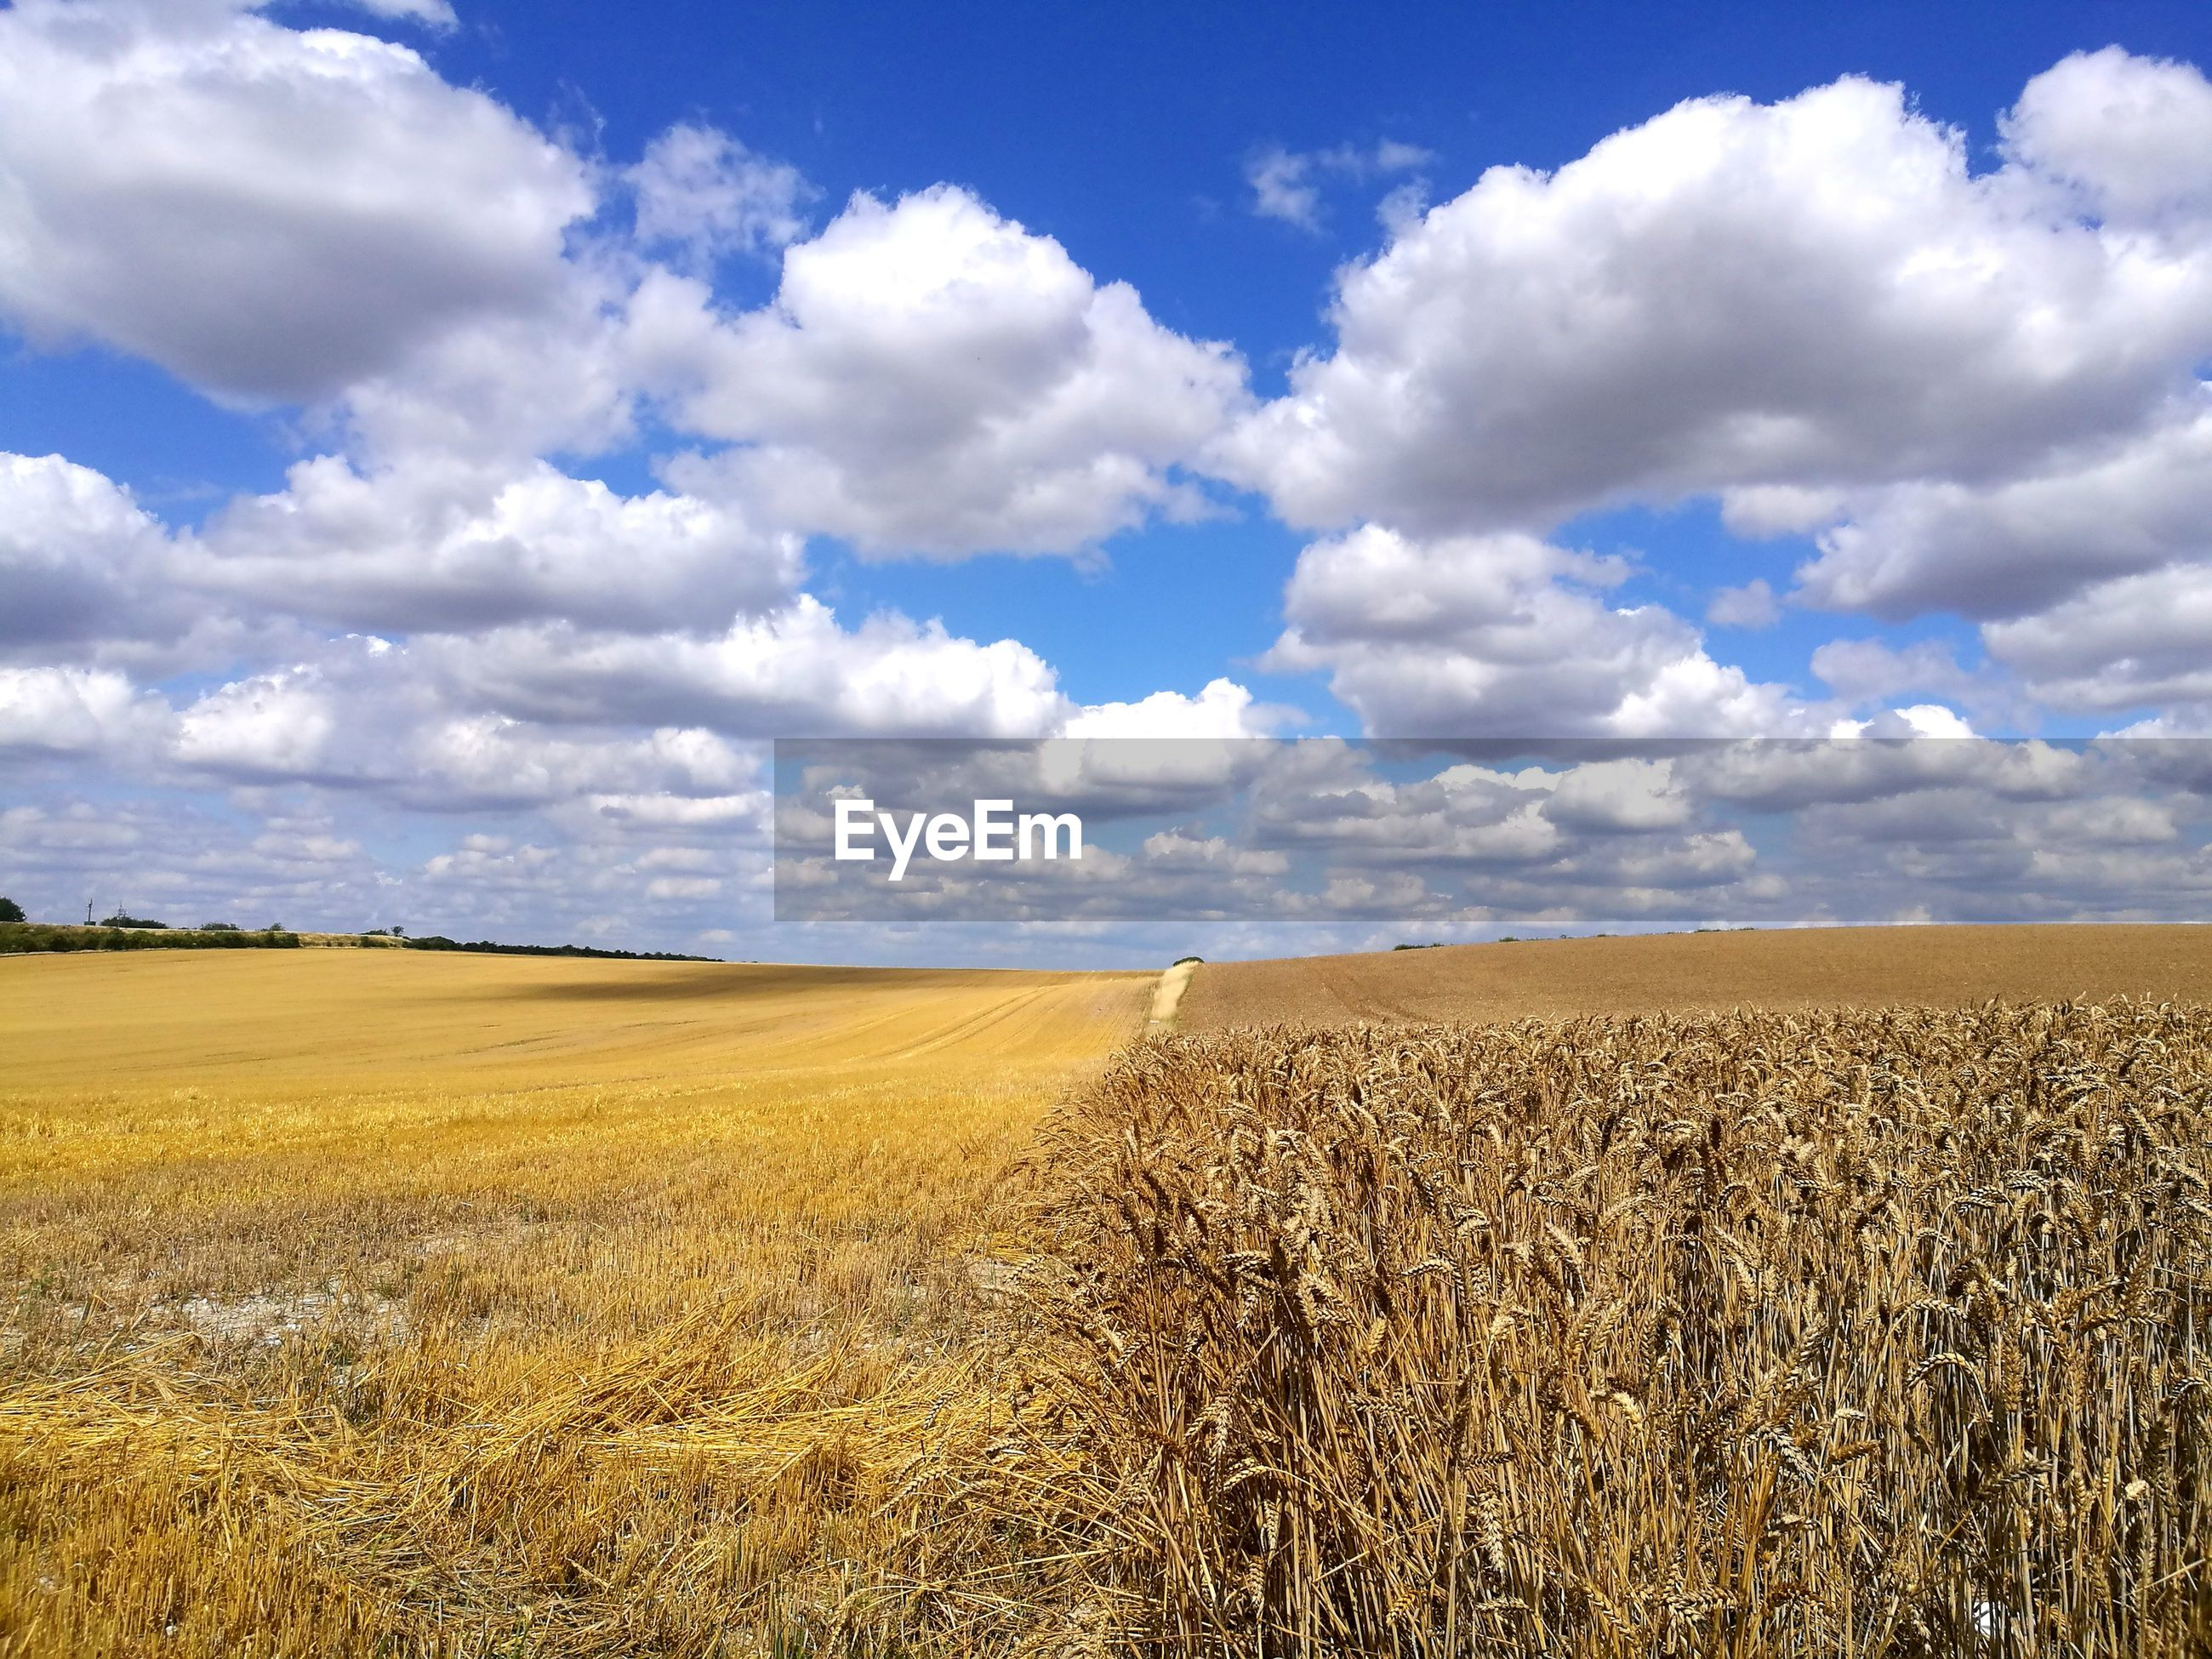 Crop fields on sunny day with blue sky and clouds- east anglia uk england